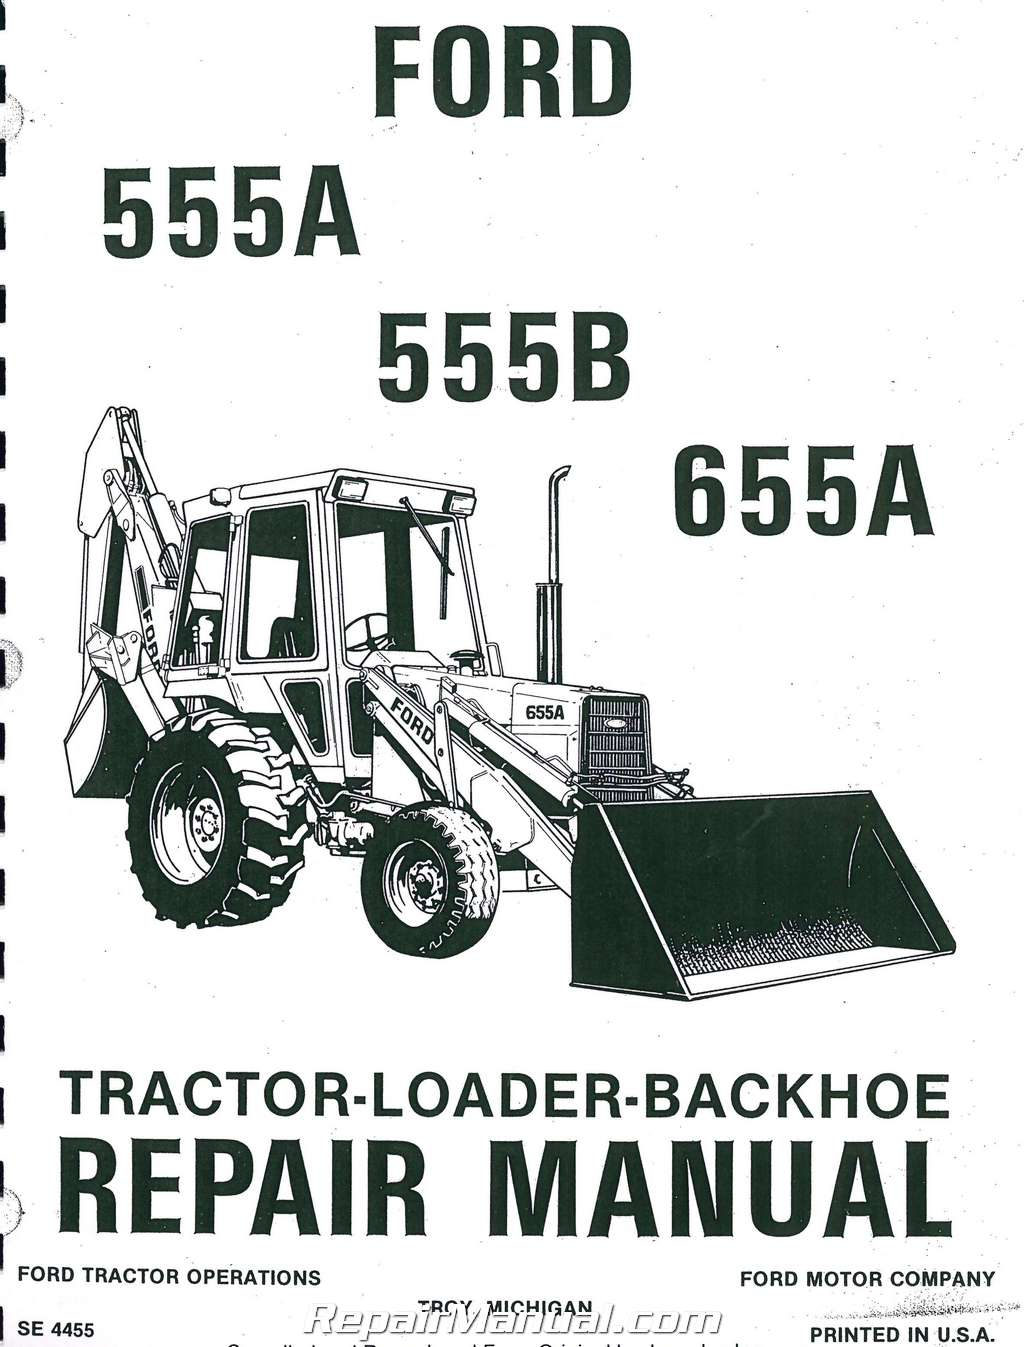 Ford 555a 555b 655a Tractor Loader Backhoe Printed Service Manual